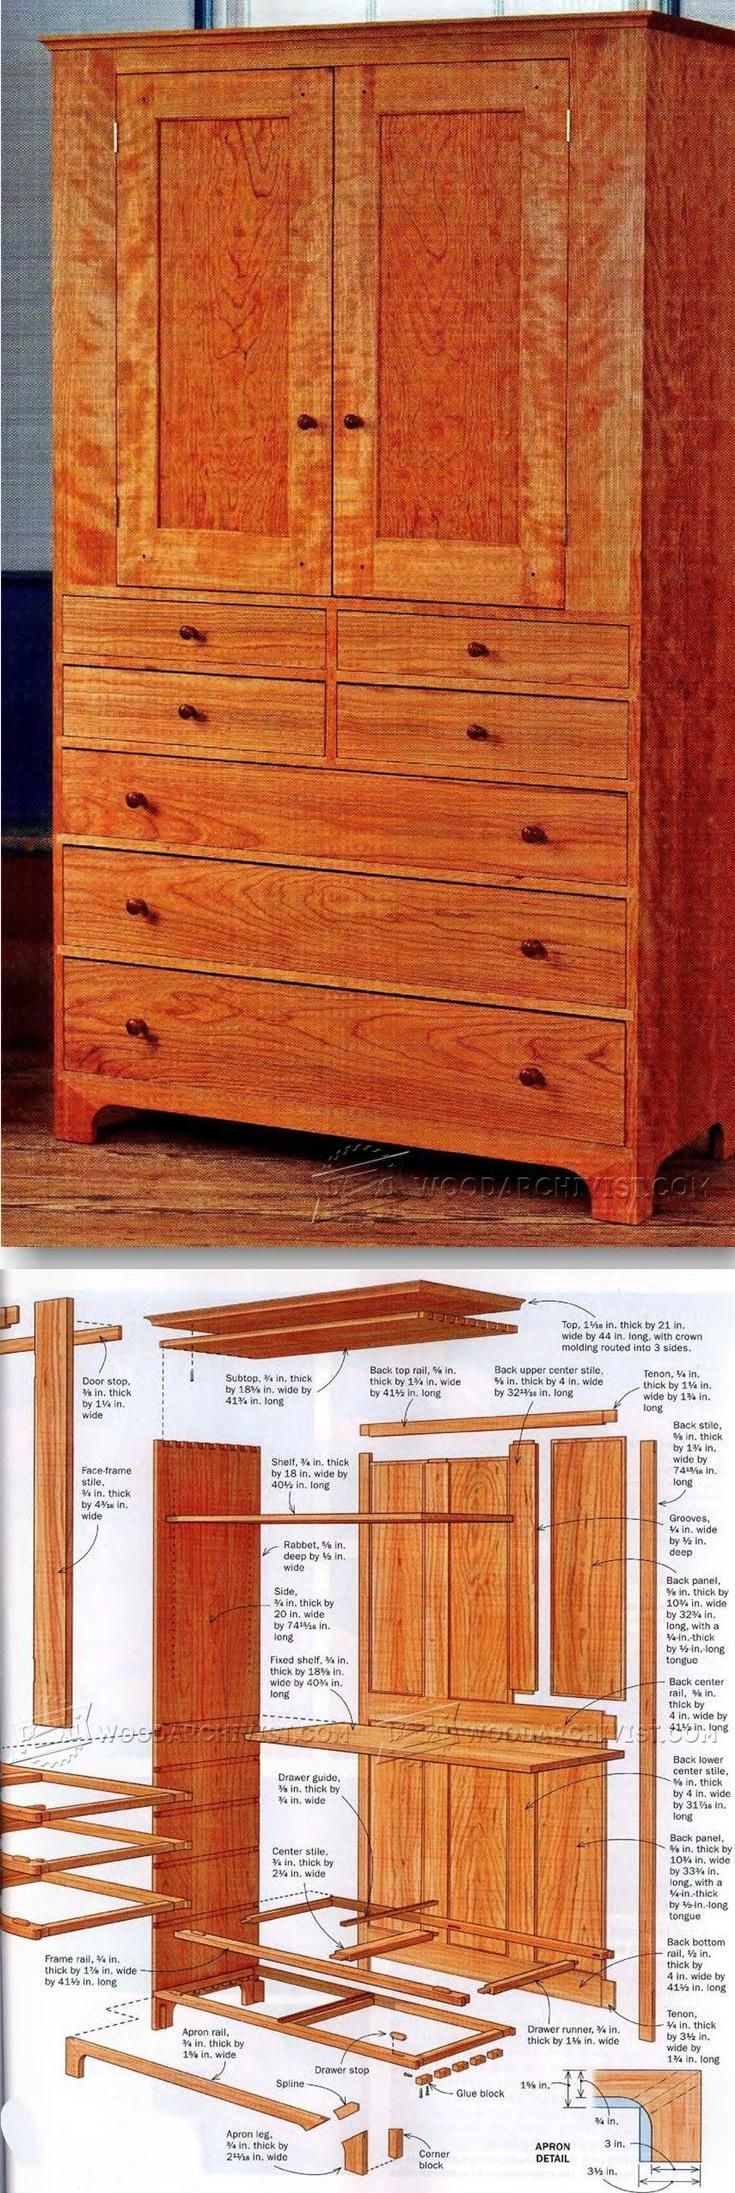 Louisiana cypress swings amp things inc - Shaker Cupboard Plans Furniture Plans And Projects Woodarchivist Com